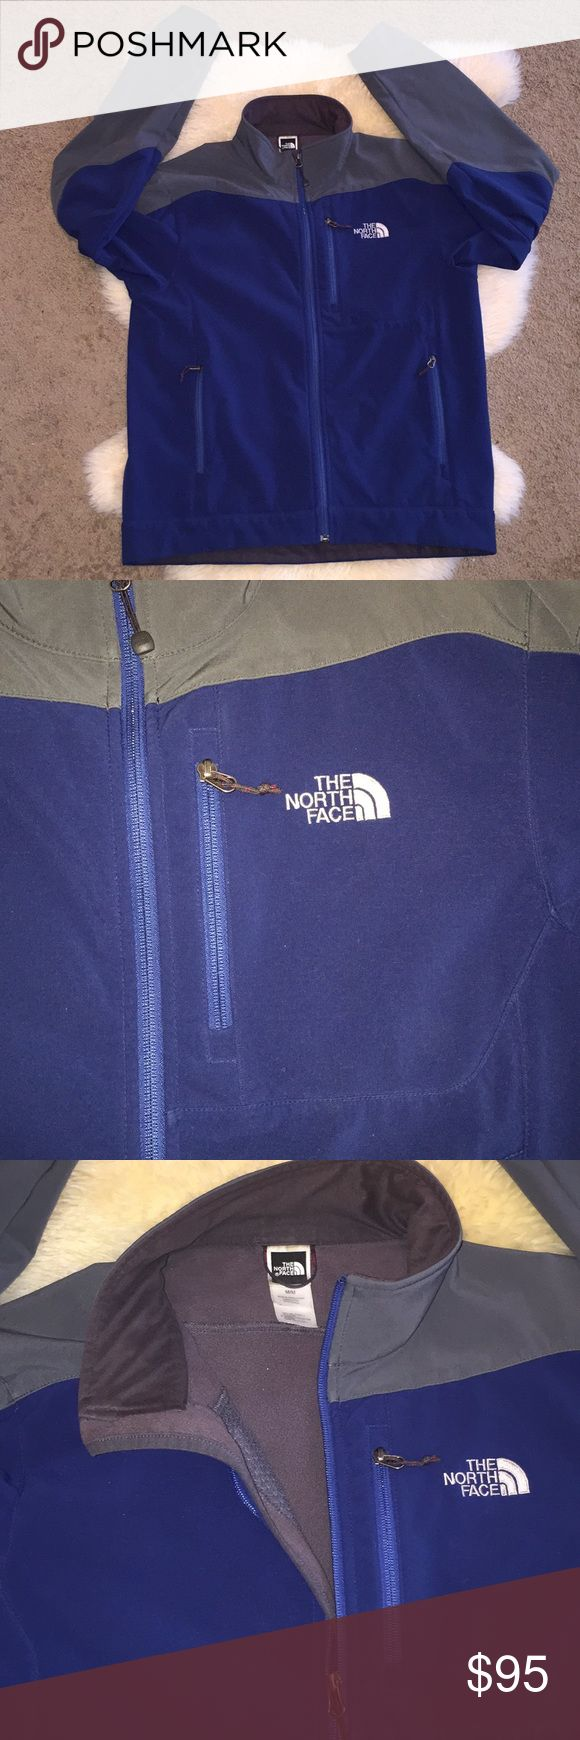 The north face jacket medium Men's jacket full zipper by the north face size medium grey and bleu fabric content  SHELL 96% Polyester 4% Elastane LINING 100% polyester. NB THIS JACKET HAS NORMAL SIGNS OF USE BUT NO CUTS OR MAJOR DEFECTS OVERALL SHAPE IS GREAT VERY WARM AND GOOD LOOKING The North Face Jackets & Coats